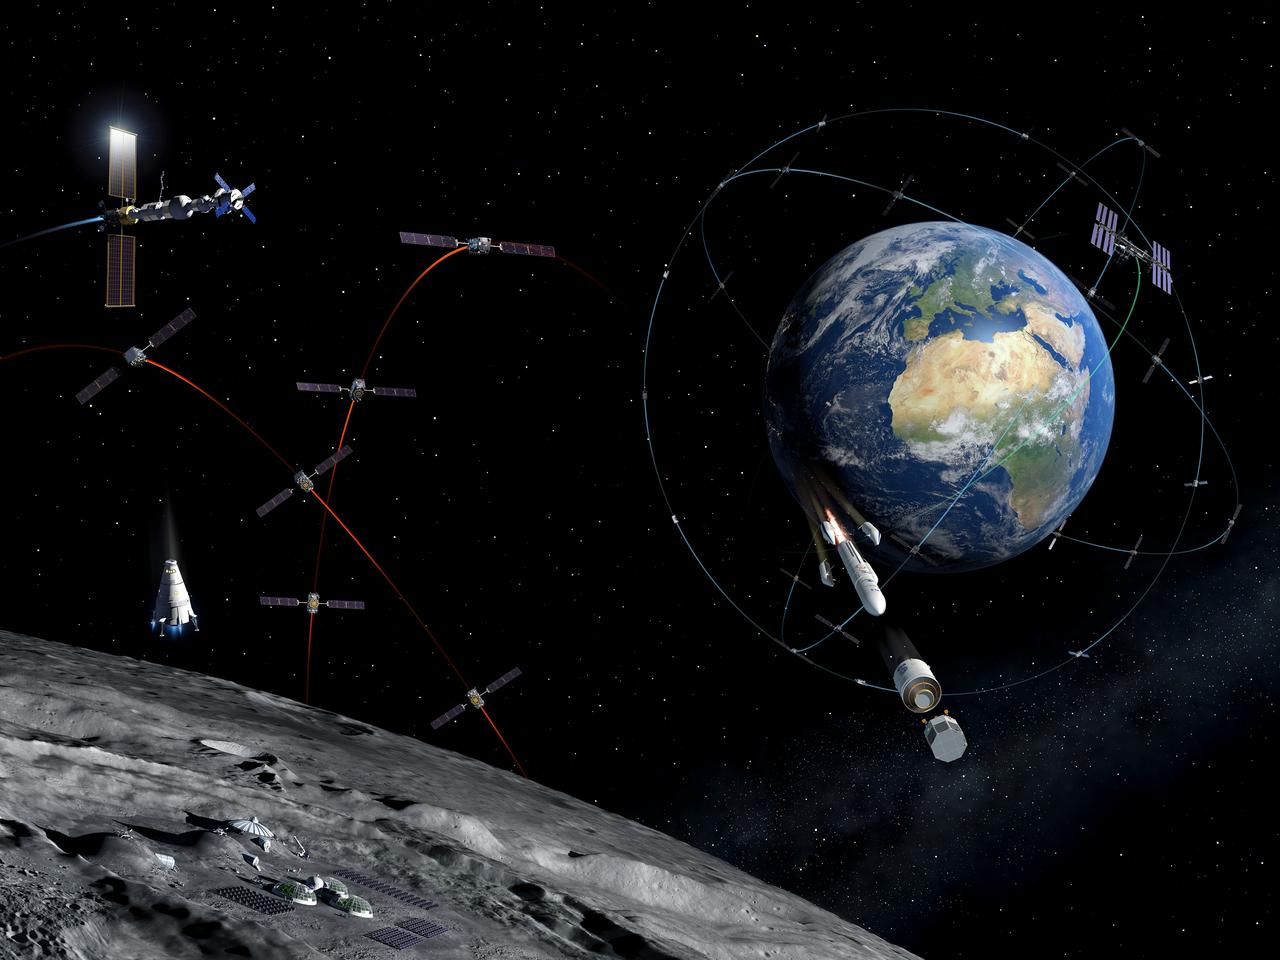 Illustration of a future lunar communications/navigation lunar system